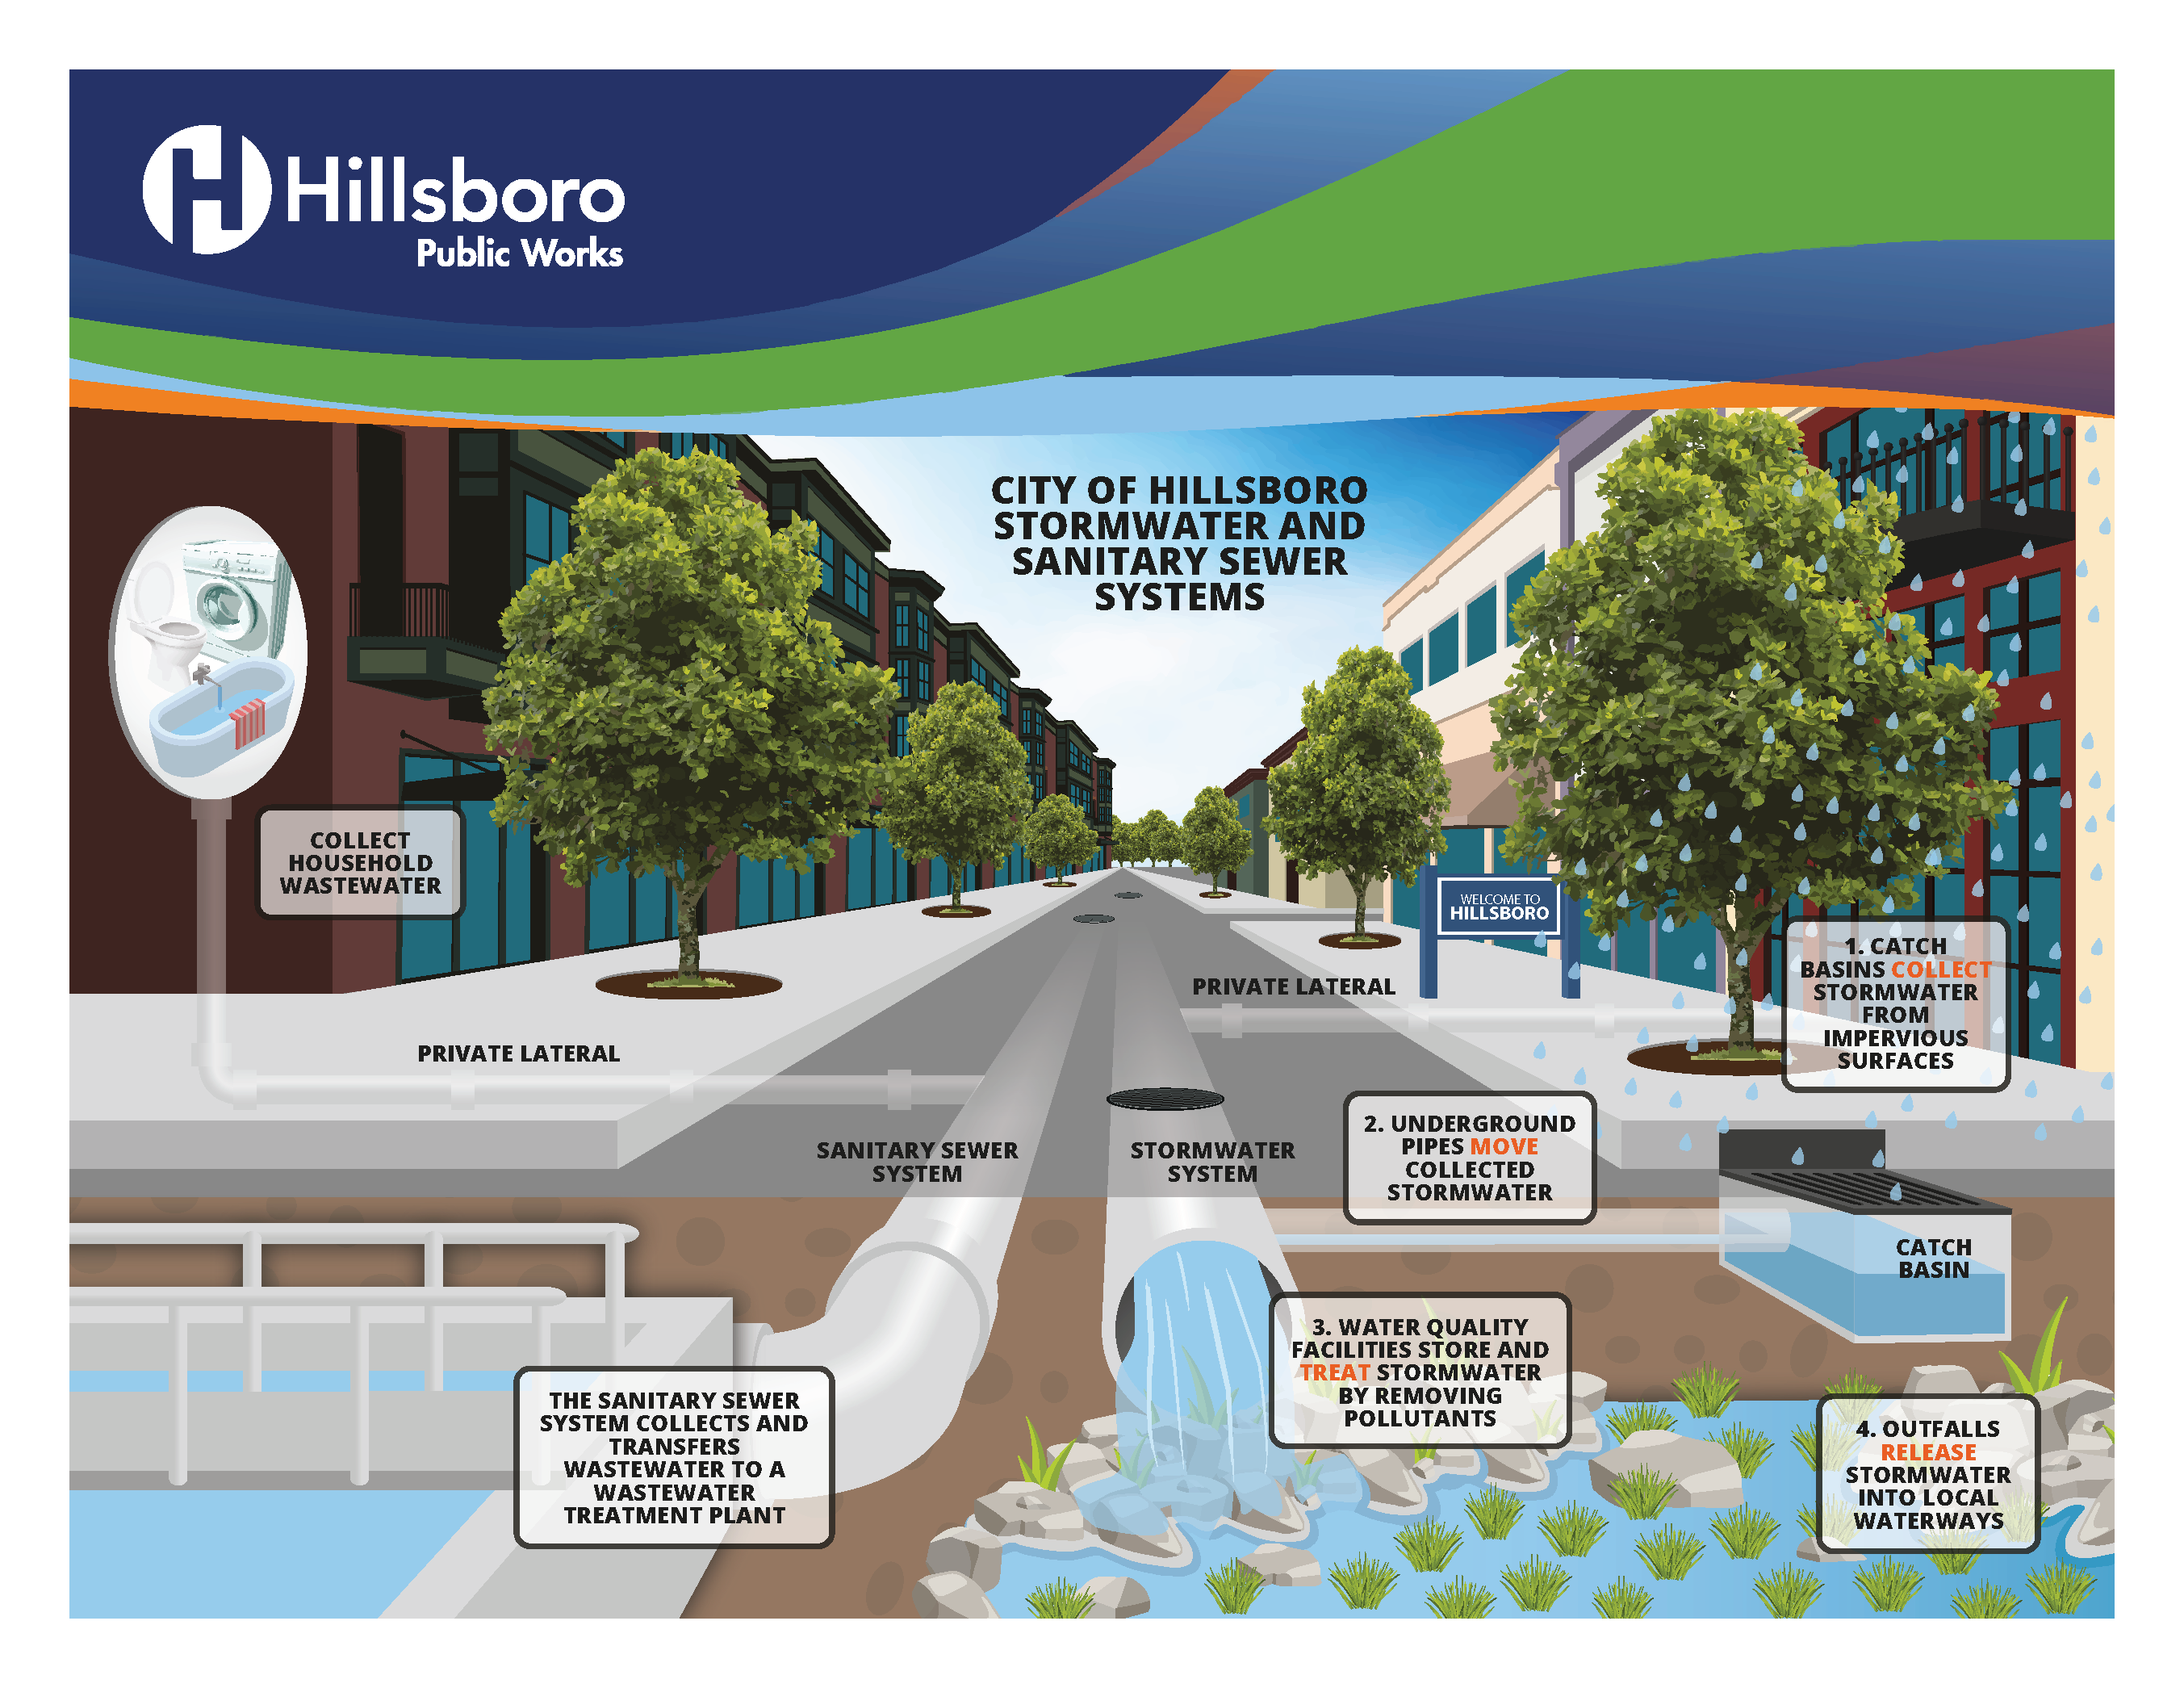 "Visit <a href=""https://www.hillsboro-oregon.gov/our-city/departments/public-works"" rel=""nofollow"" target=""_blank"">Hillsboro-Oregon.gov/PublicWorks</a> to learn more about the public Stormwater System."